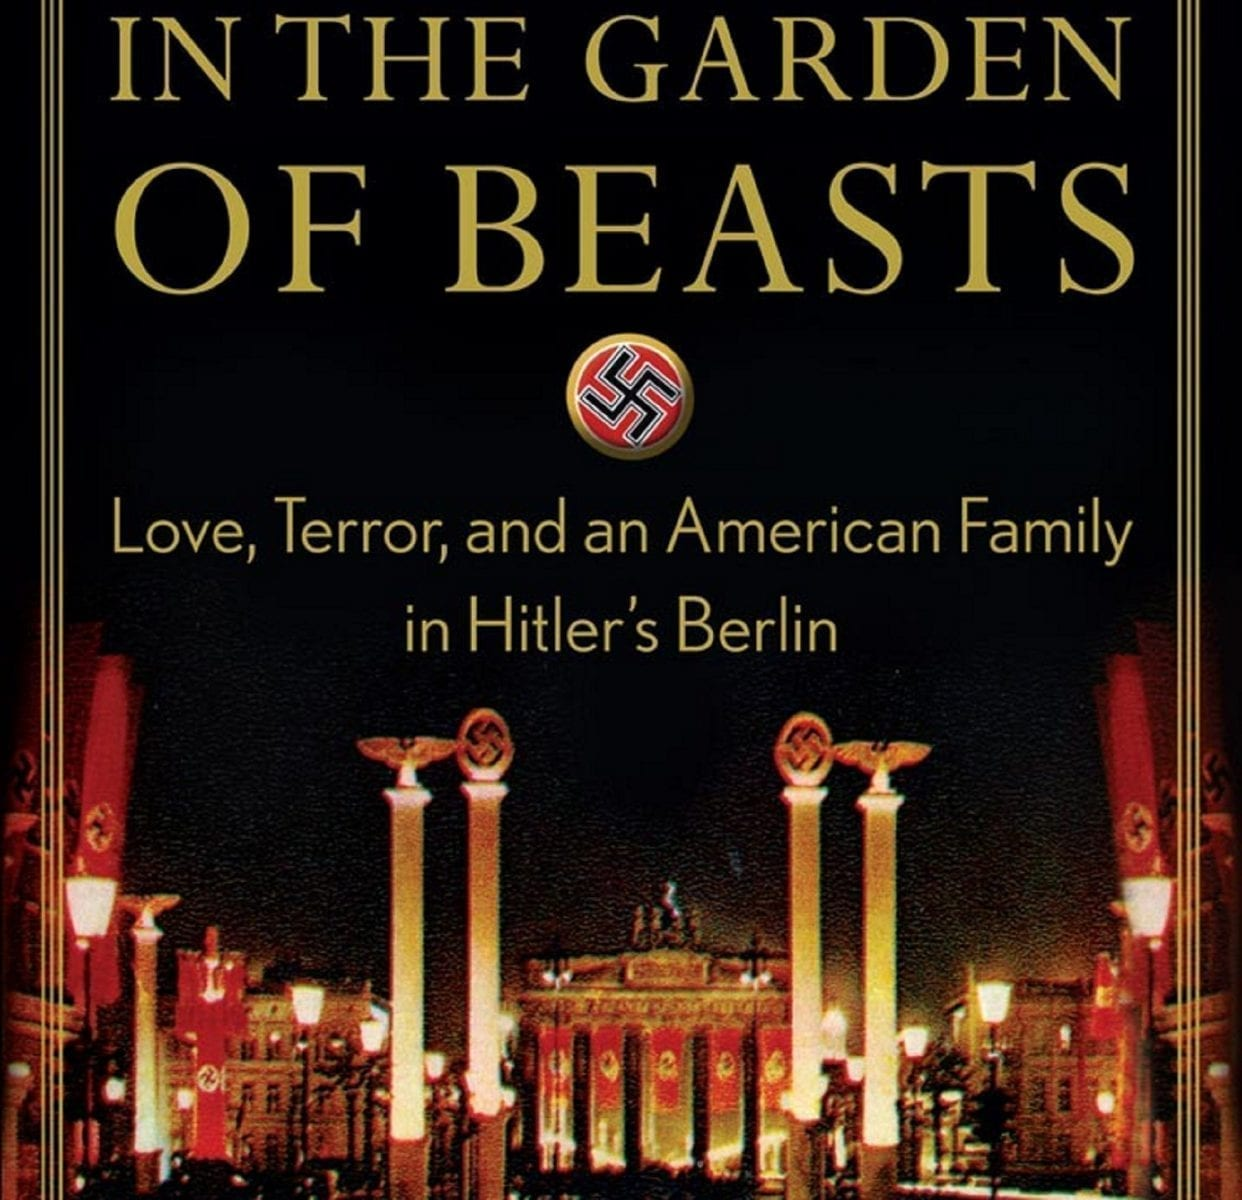 In the Garden of Beasts by Erik Larson- My Review